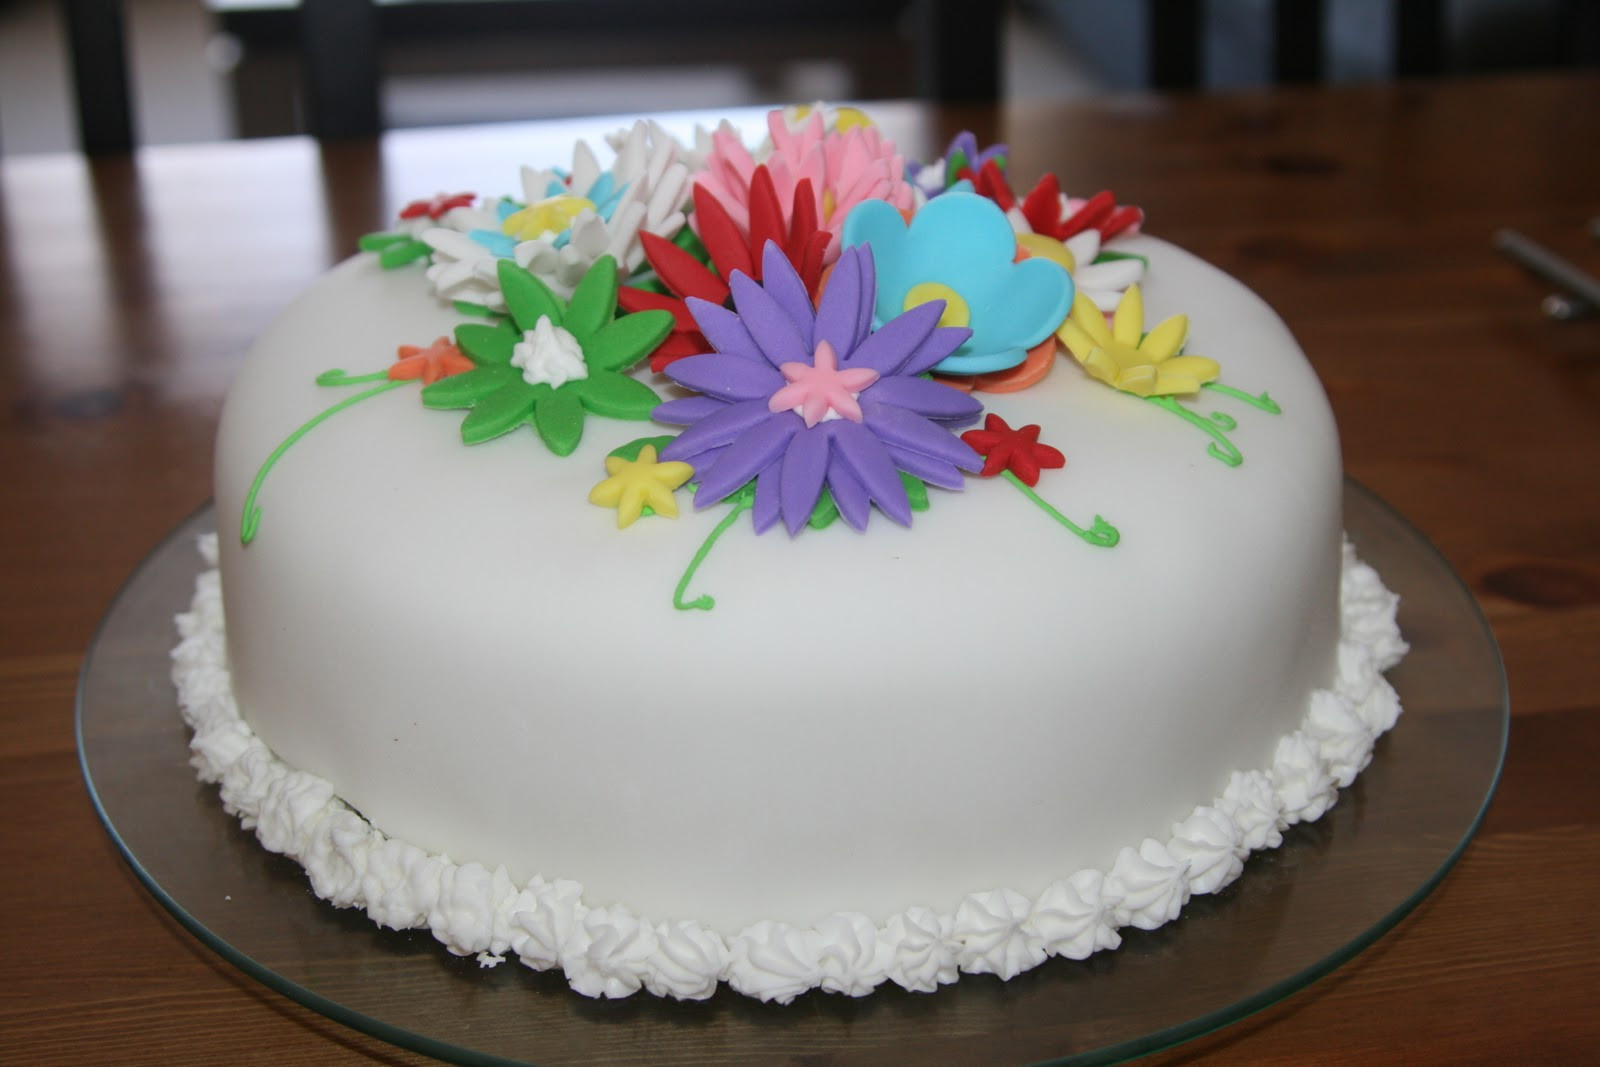 Best ideas about Birthday Cake Flowers . Save or Pin For the Fun of Cooking Flower Birthday Cake Now.